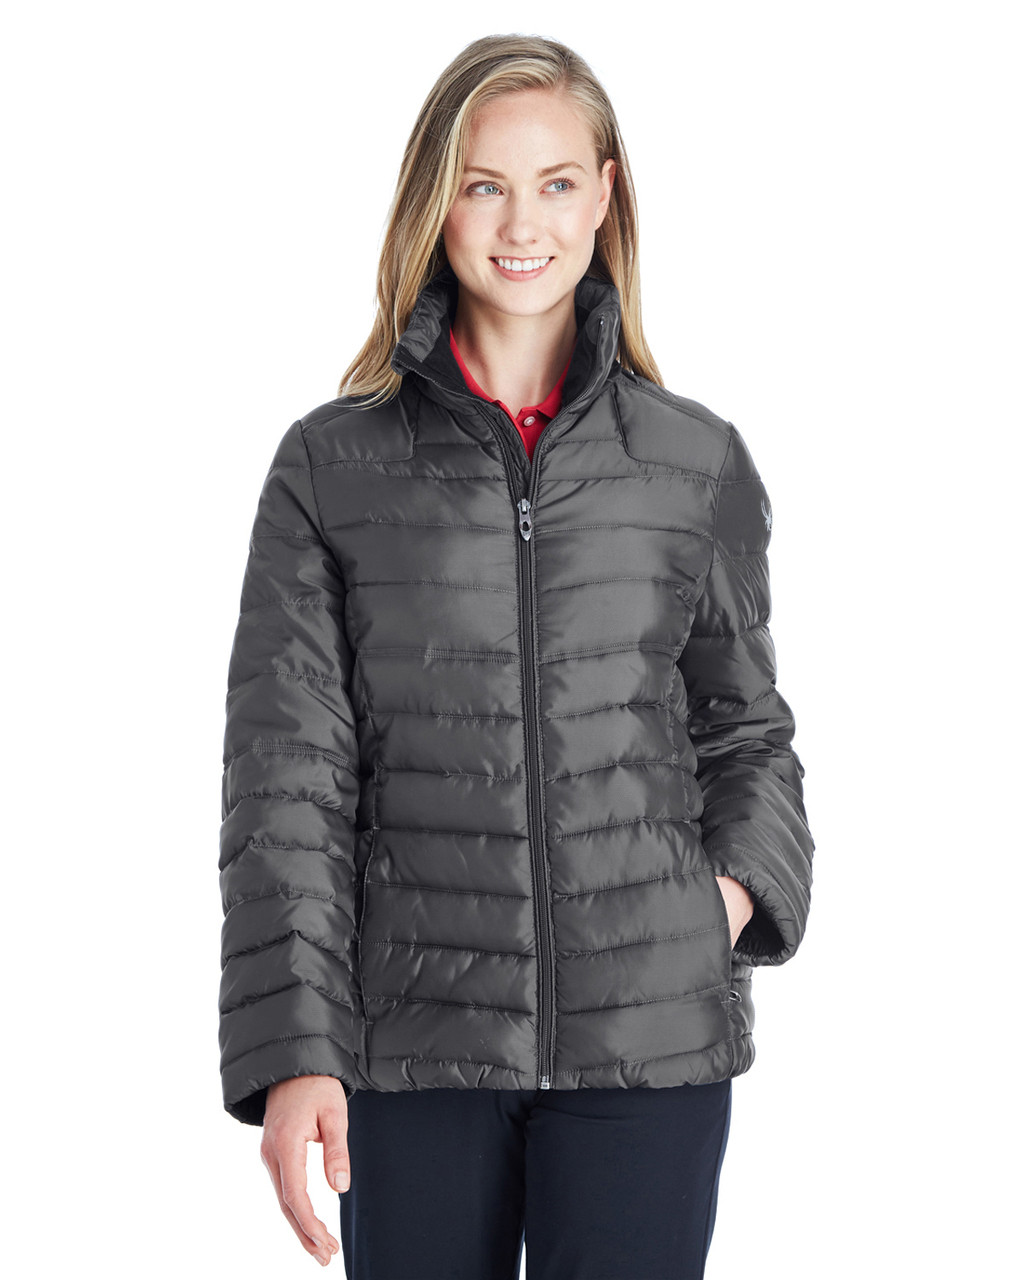 Polar/Alloy - 187336 Spyder Ladies' Supreme Insulated Puffer Jacket | BlankClothing.ca